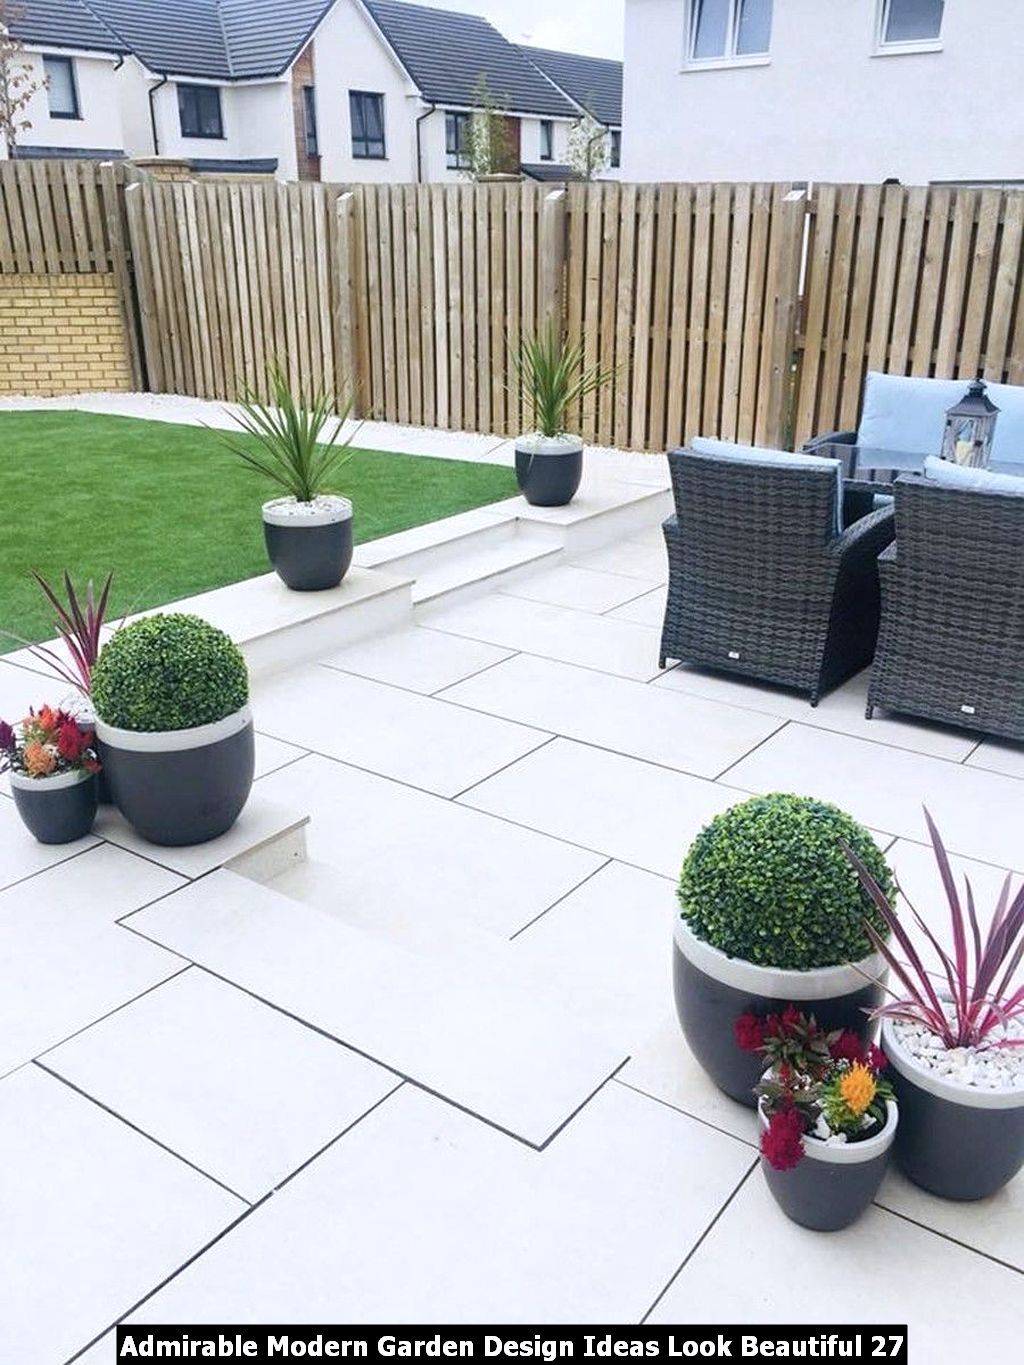 Admirable Modern Garden Design Ideas Look Beautiful 27